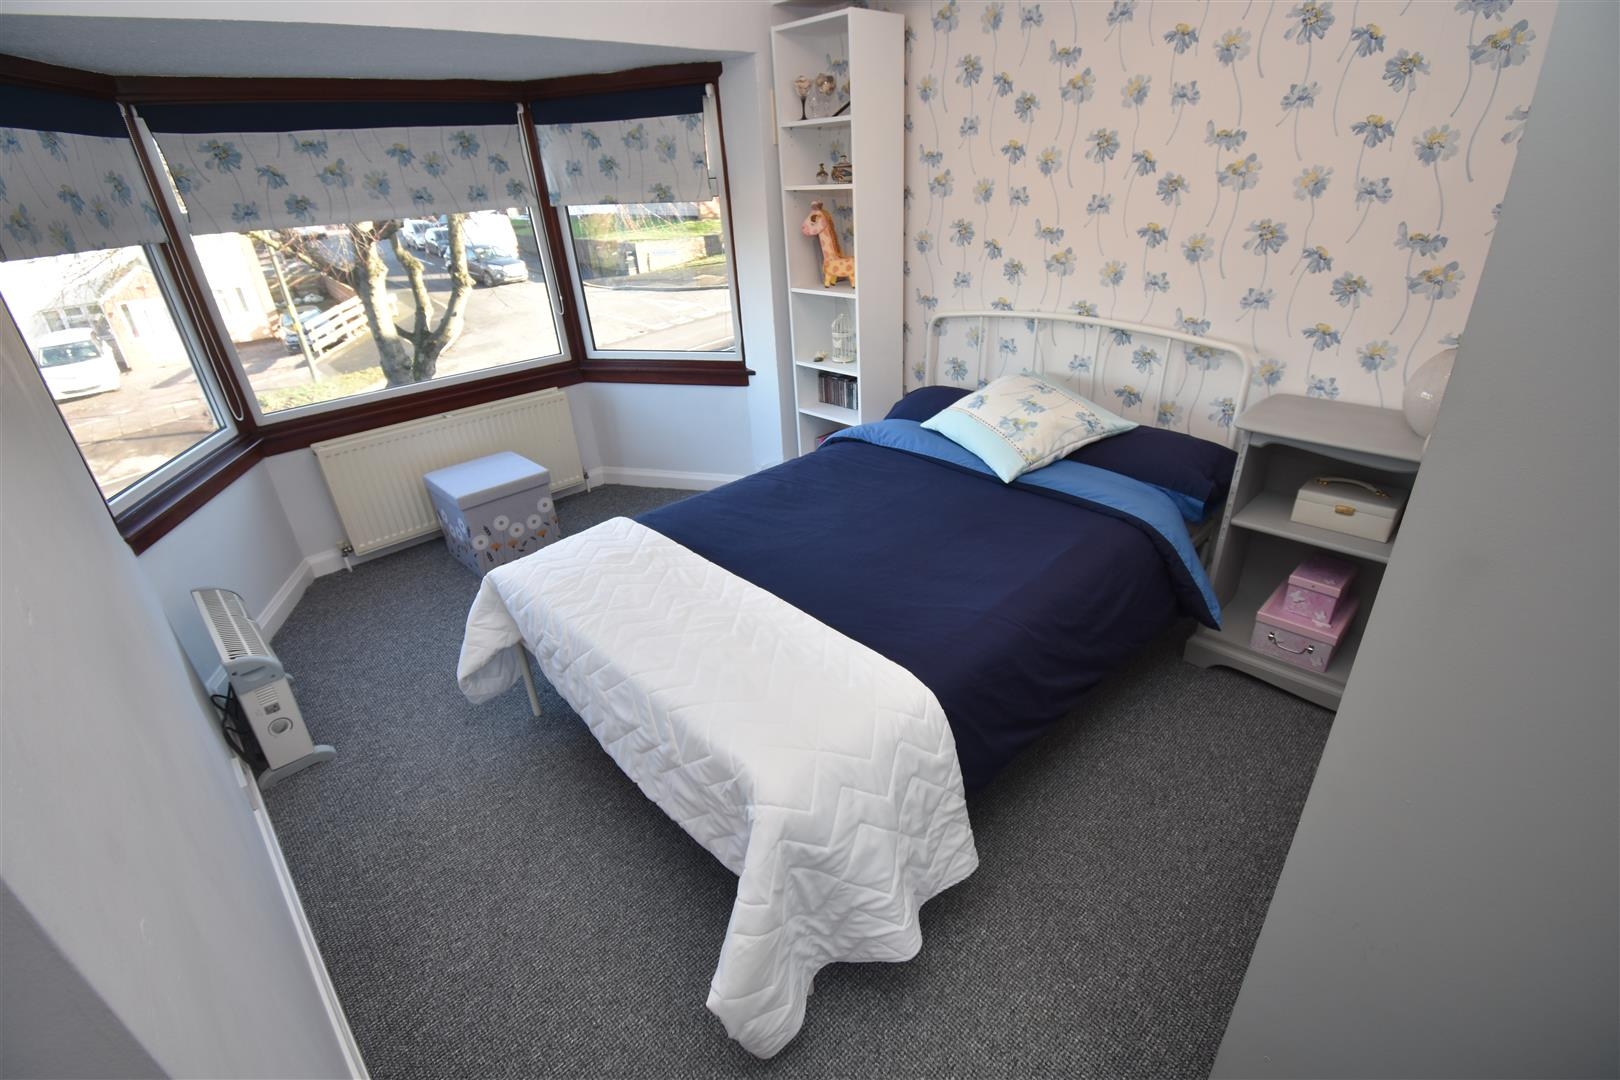 3 bed house for sale in Bromford Road, Hodge Hill, Birmingham B36 8HR 8